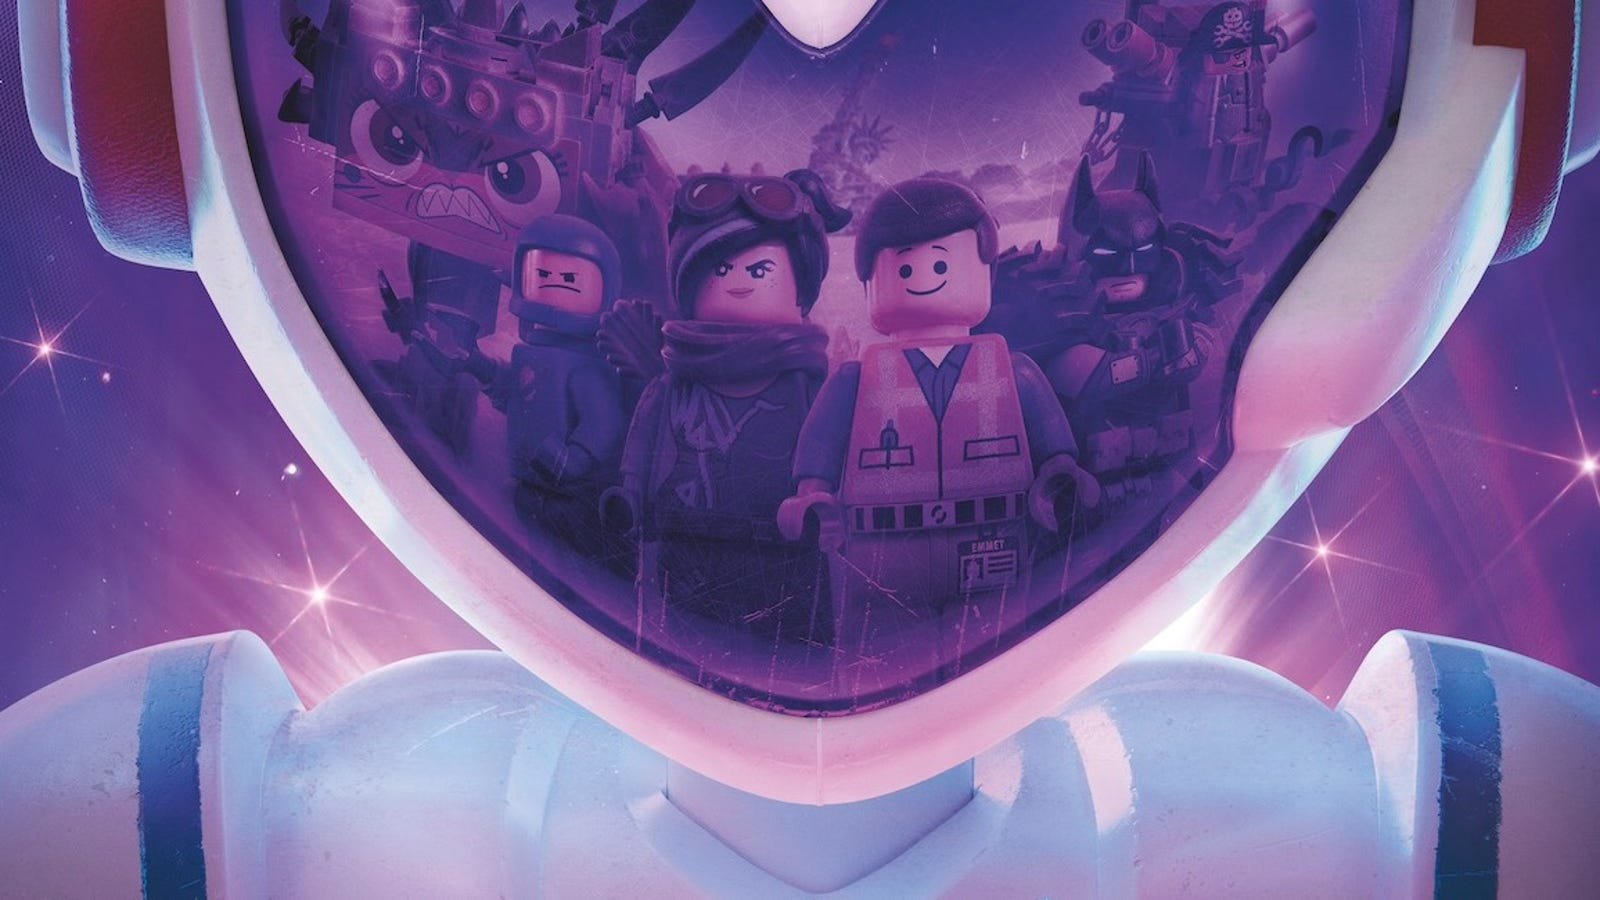 Lego Movie 2 Trailer 2 Blasts Off on an Intergalactic ...